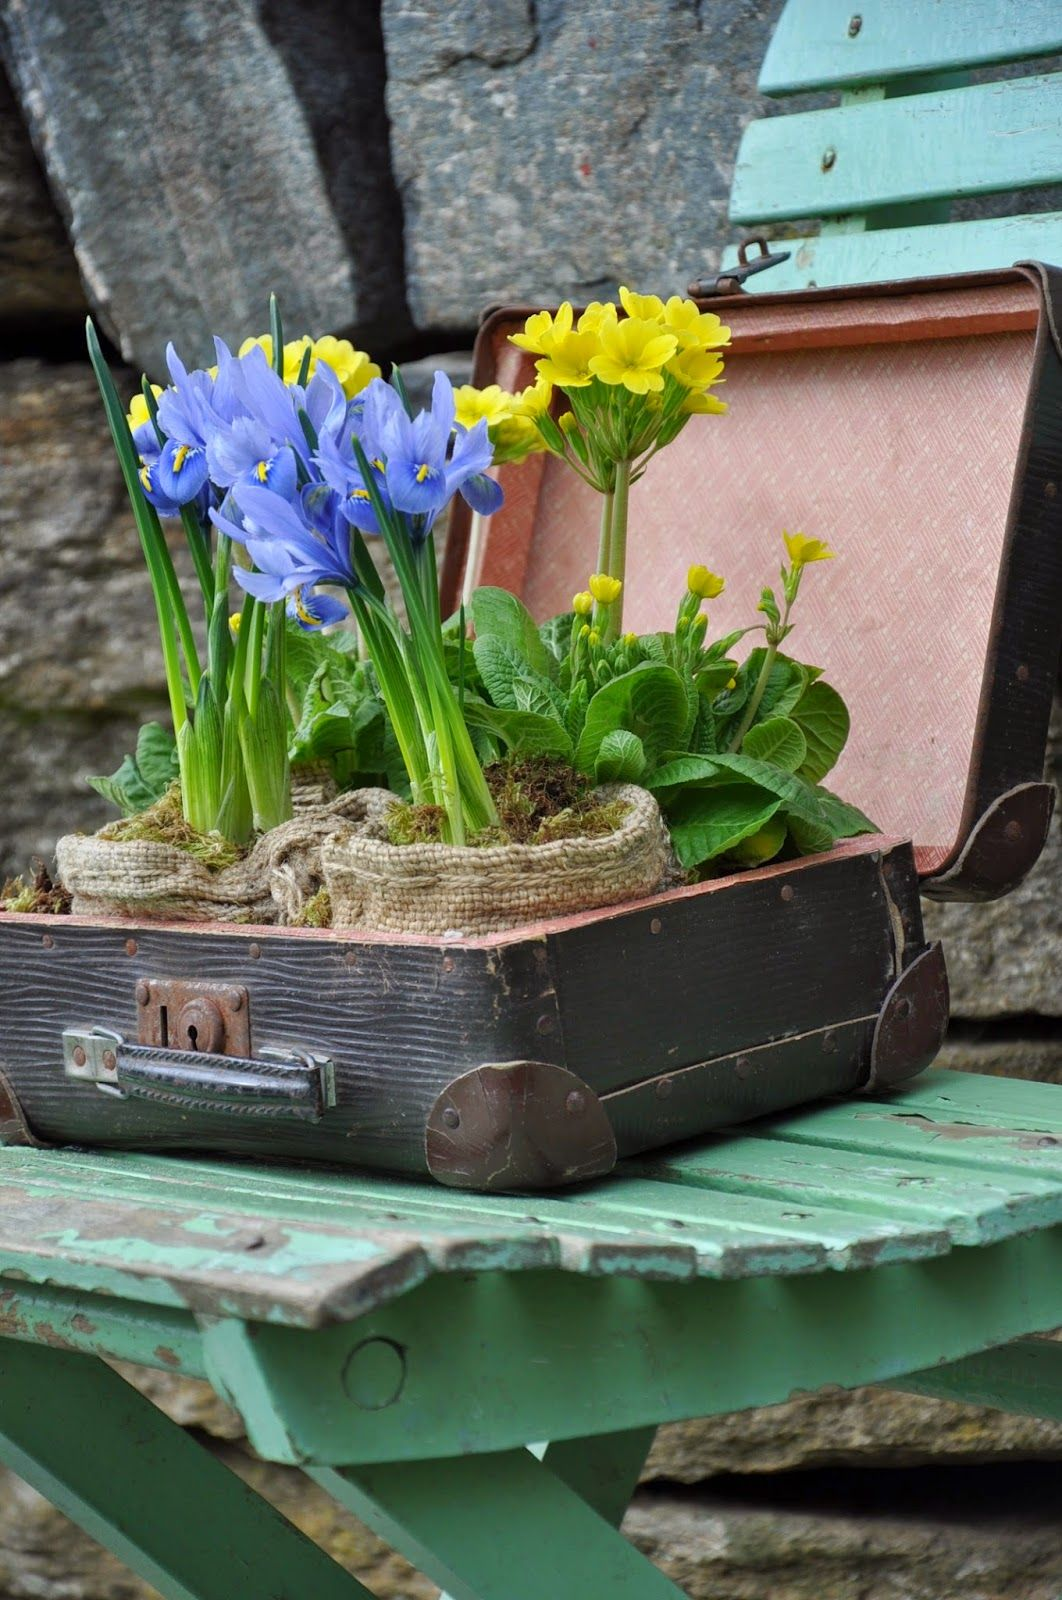 love this idea of using an old suitcase to display flowers